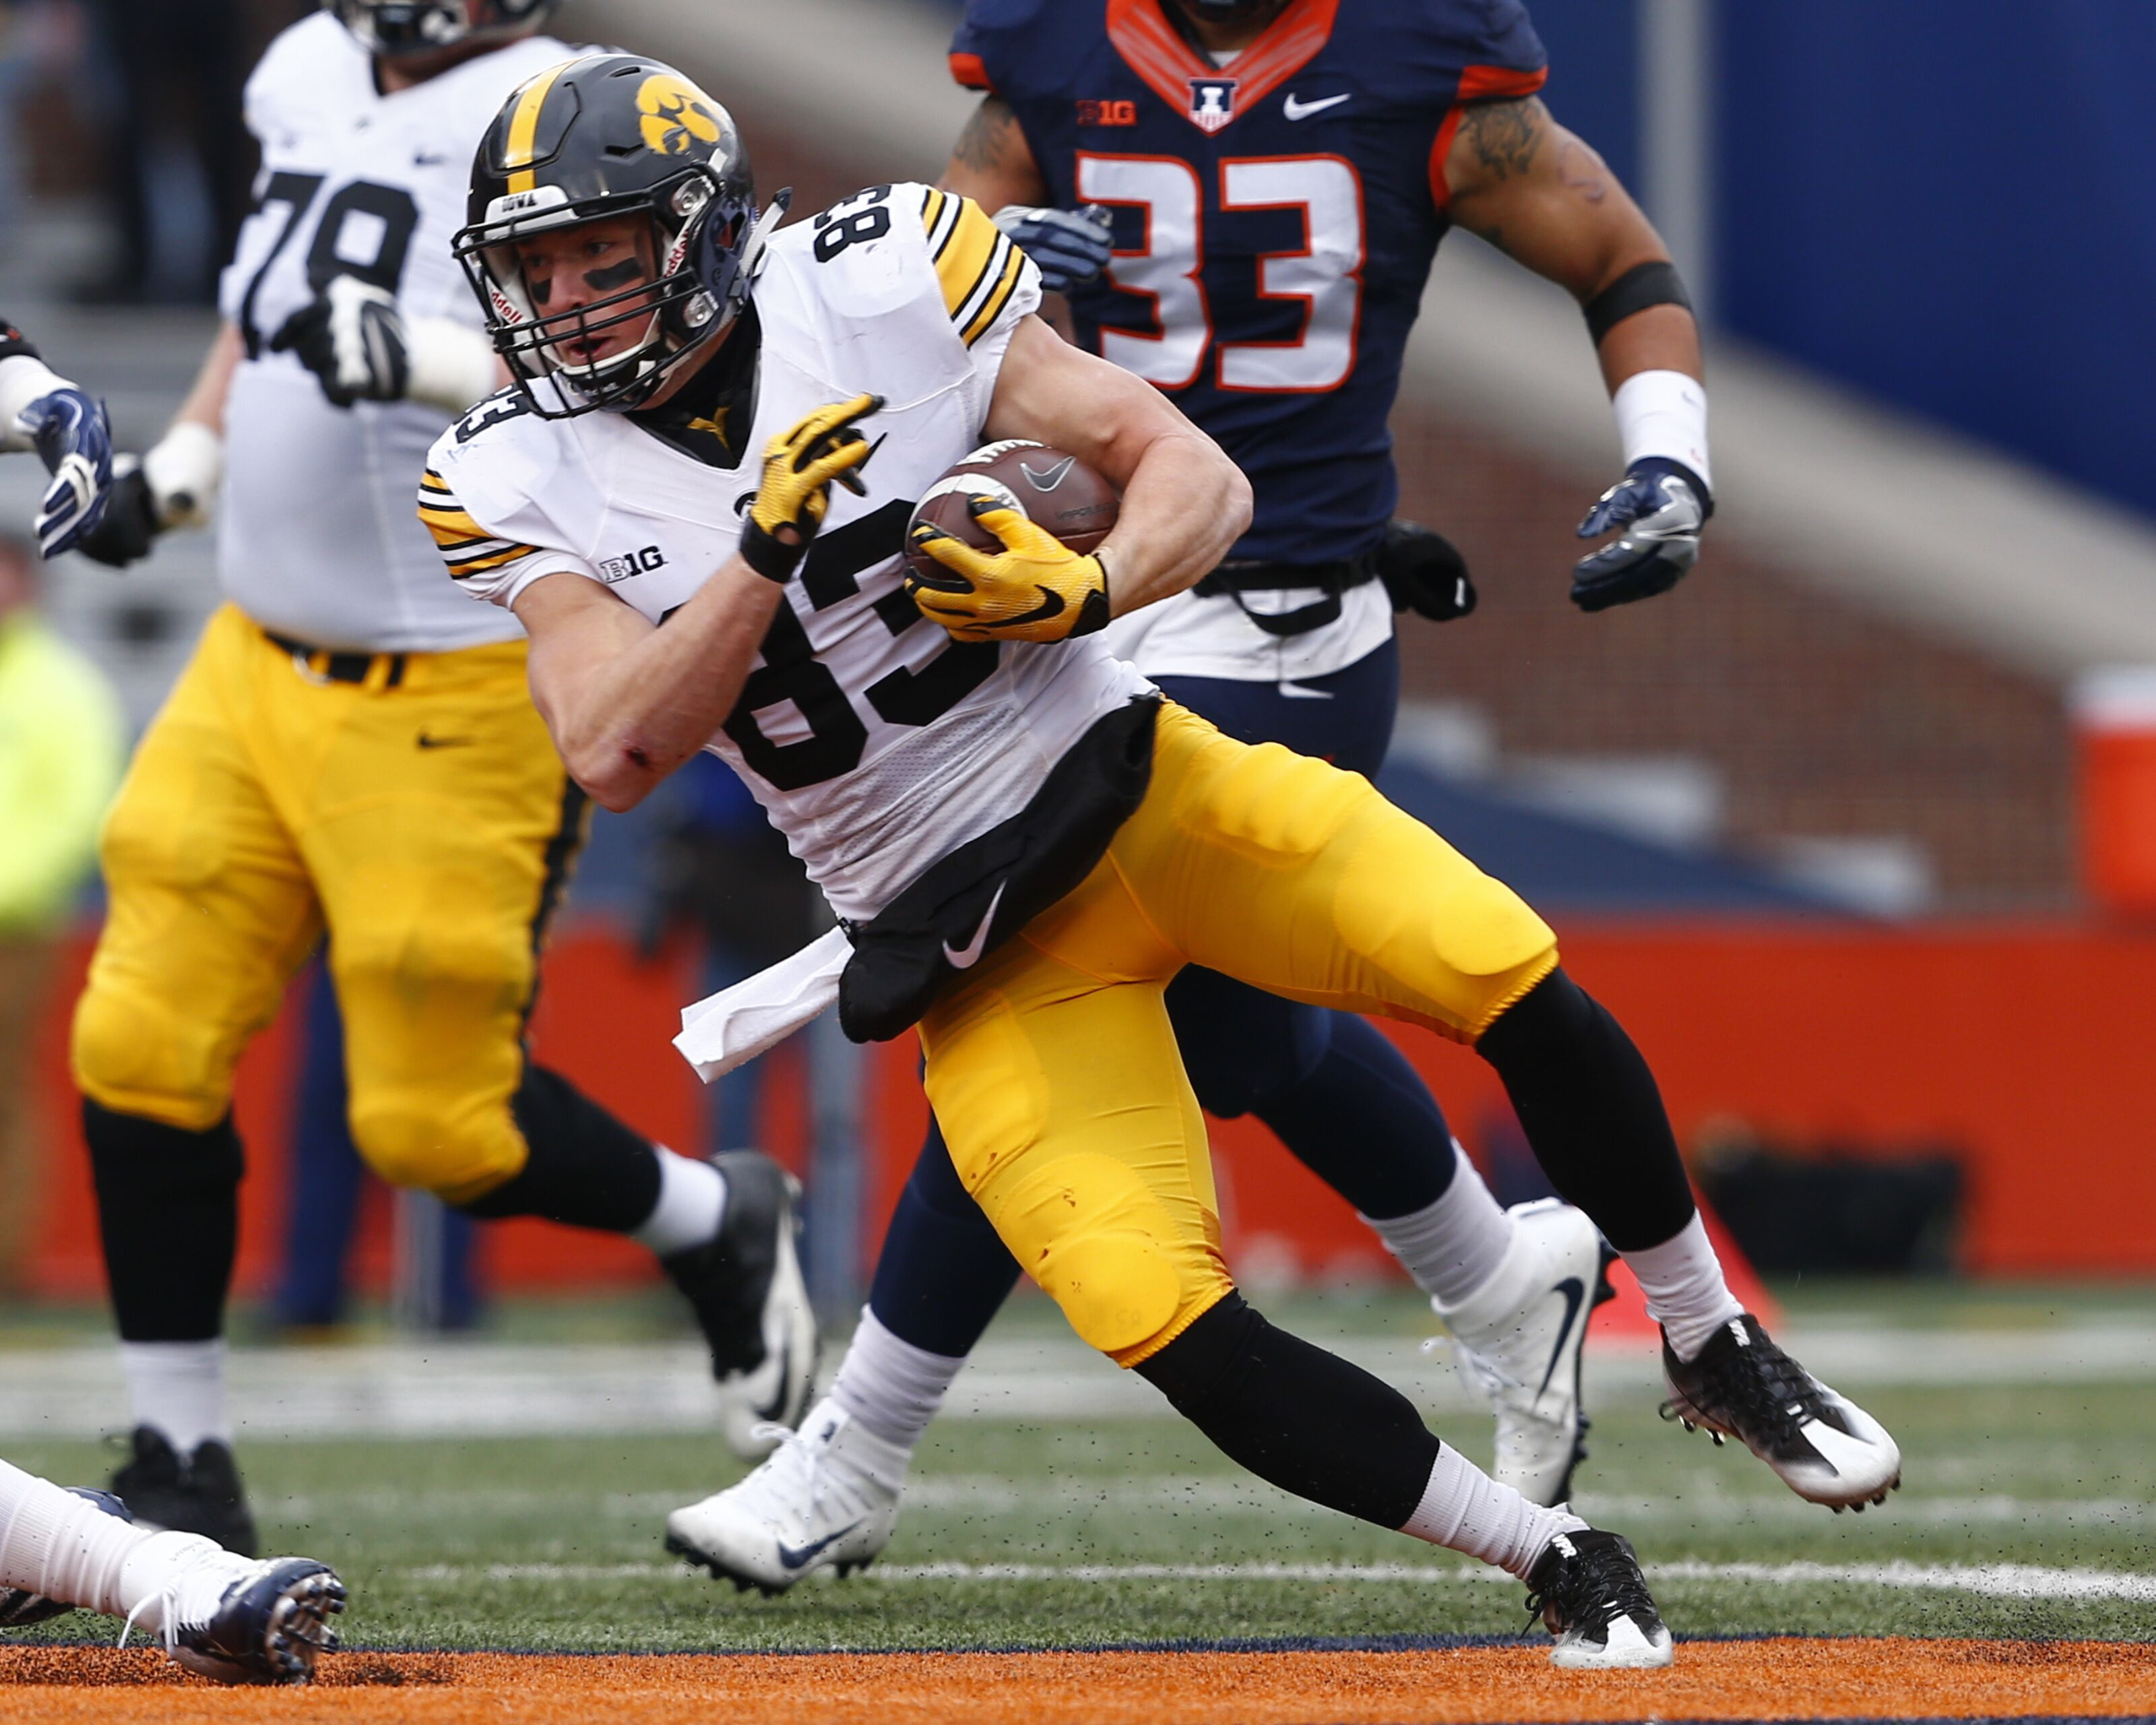 c8f4791e31a Iowa football: Riley McCarron could make worthy challenger to Ted Ginn